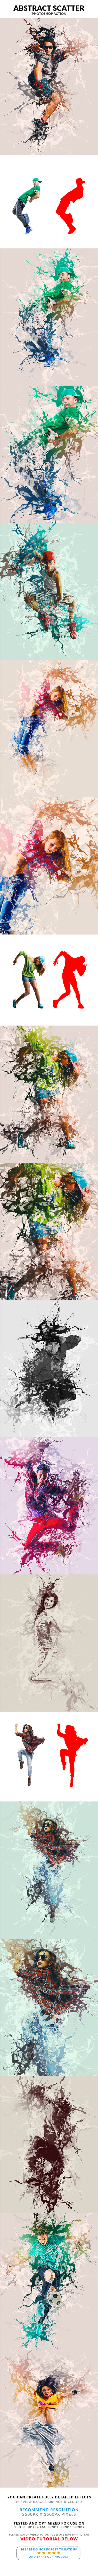 Abstract Scatter Photoshop Action - Photo Effects Actions